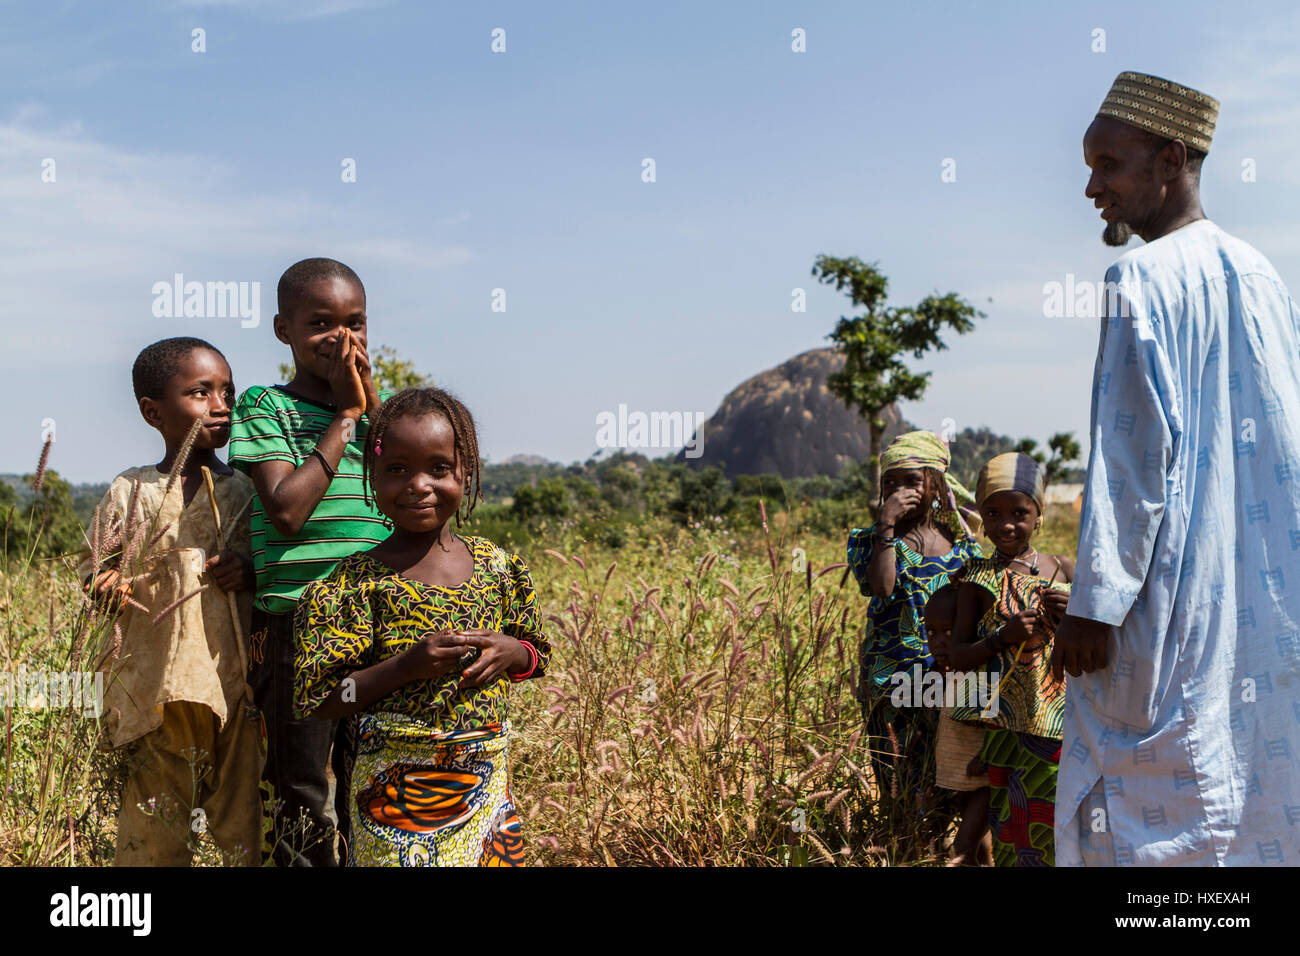 Elder of a small Fulani village close to Kaduna, Nigeria is welcomed by his children. - Stock Image